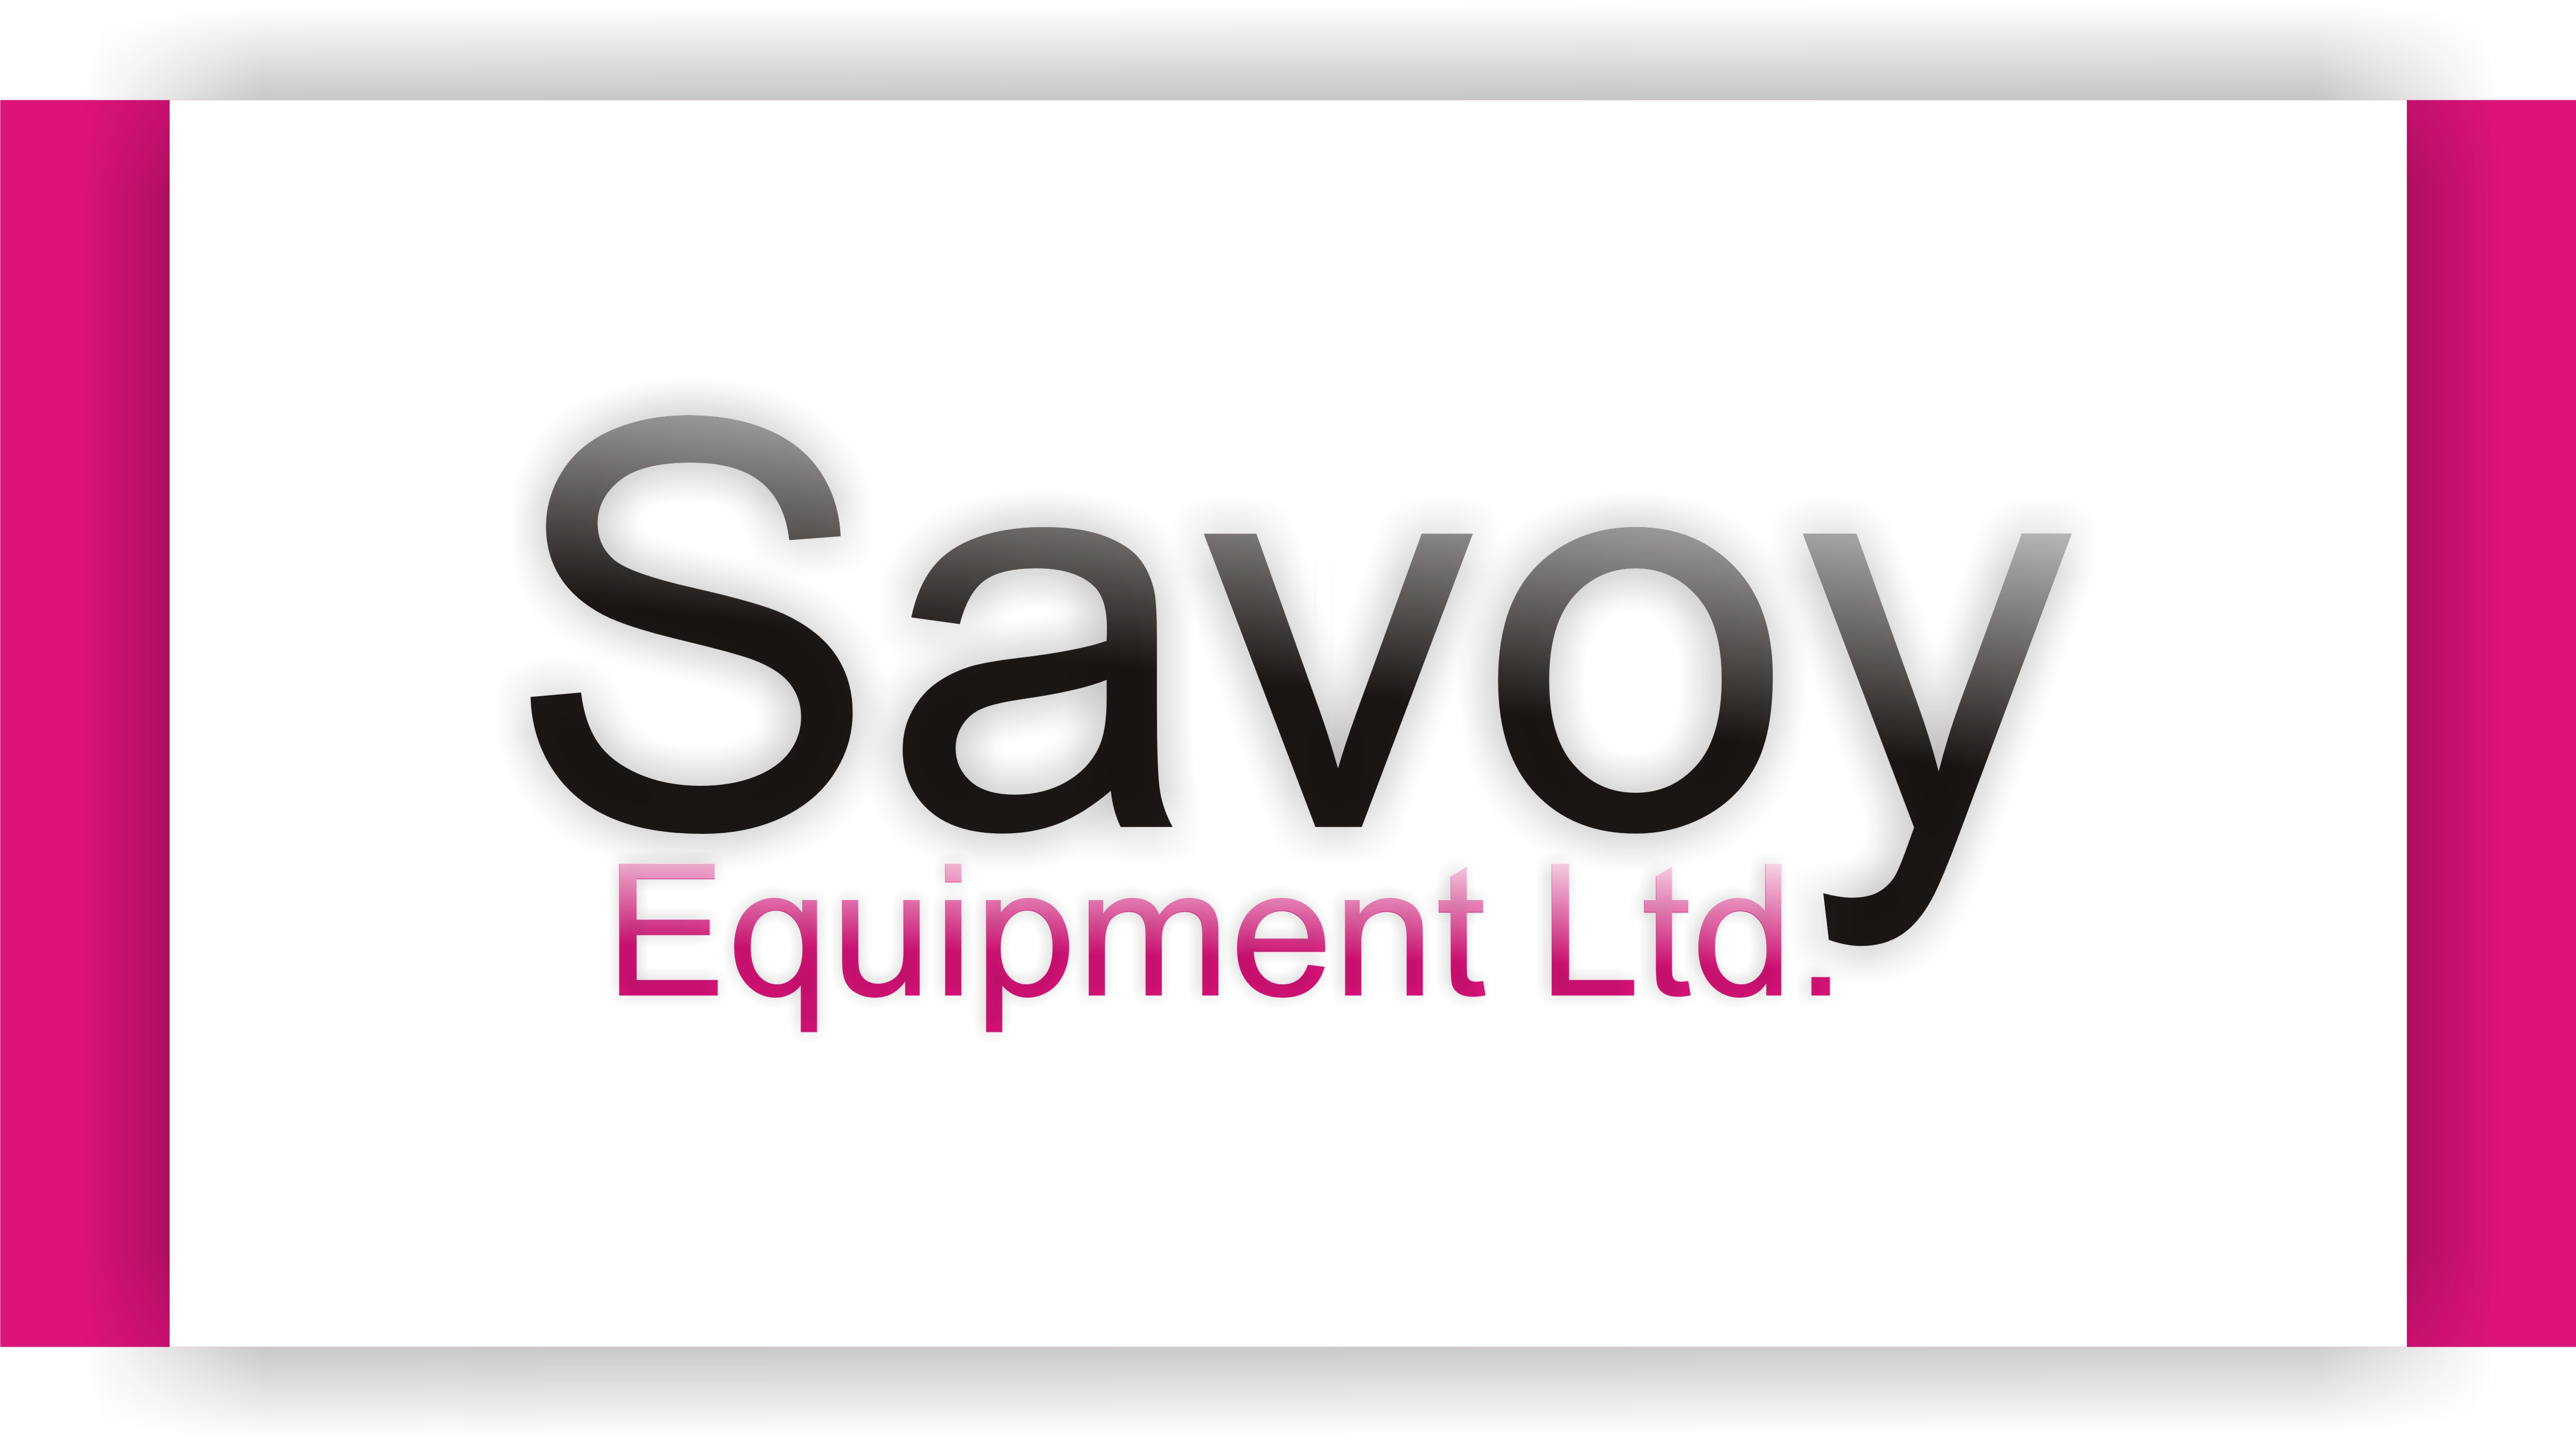 Logo Design by Shailender Kumar - Entry No. 86 in the Logo Design Contest Inspiring Logo Design for Savoy Equipment Ltd..